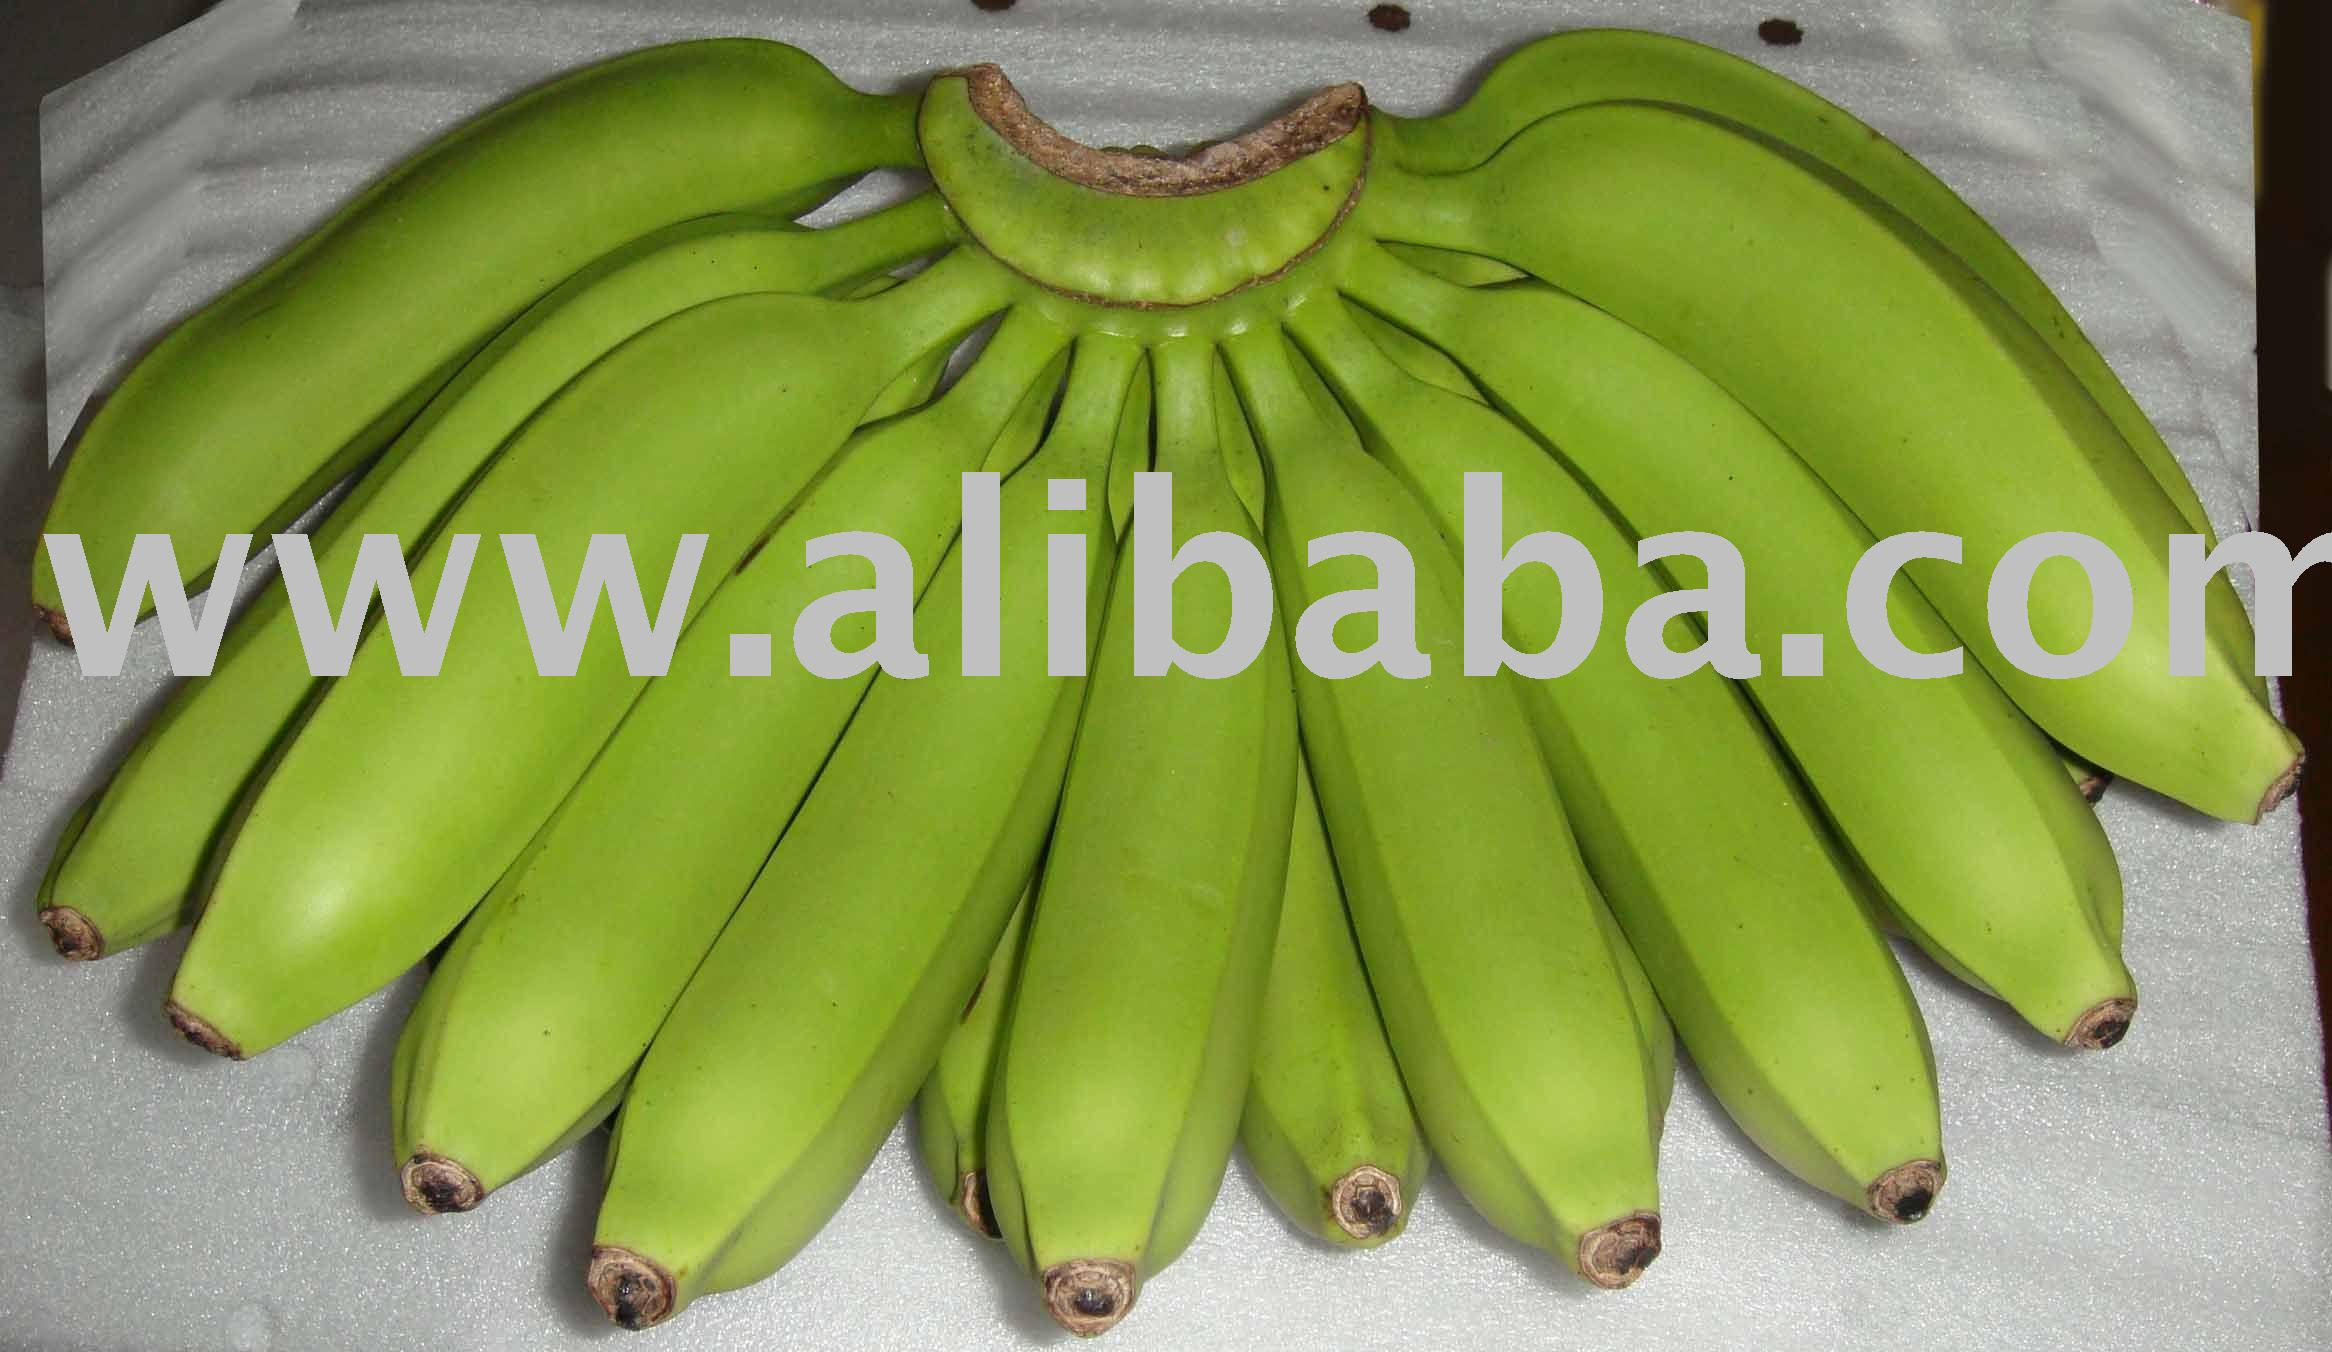 Philippine Fresh Green Cavendish Banana